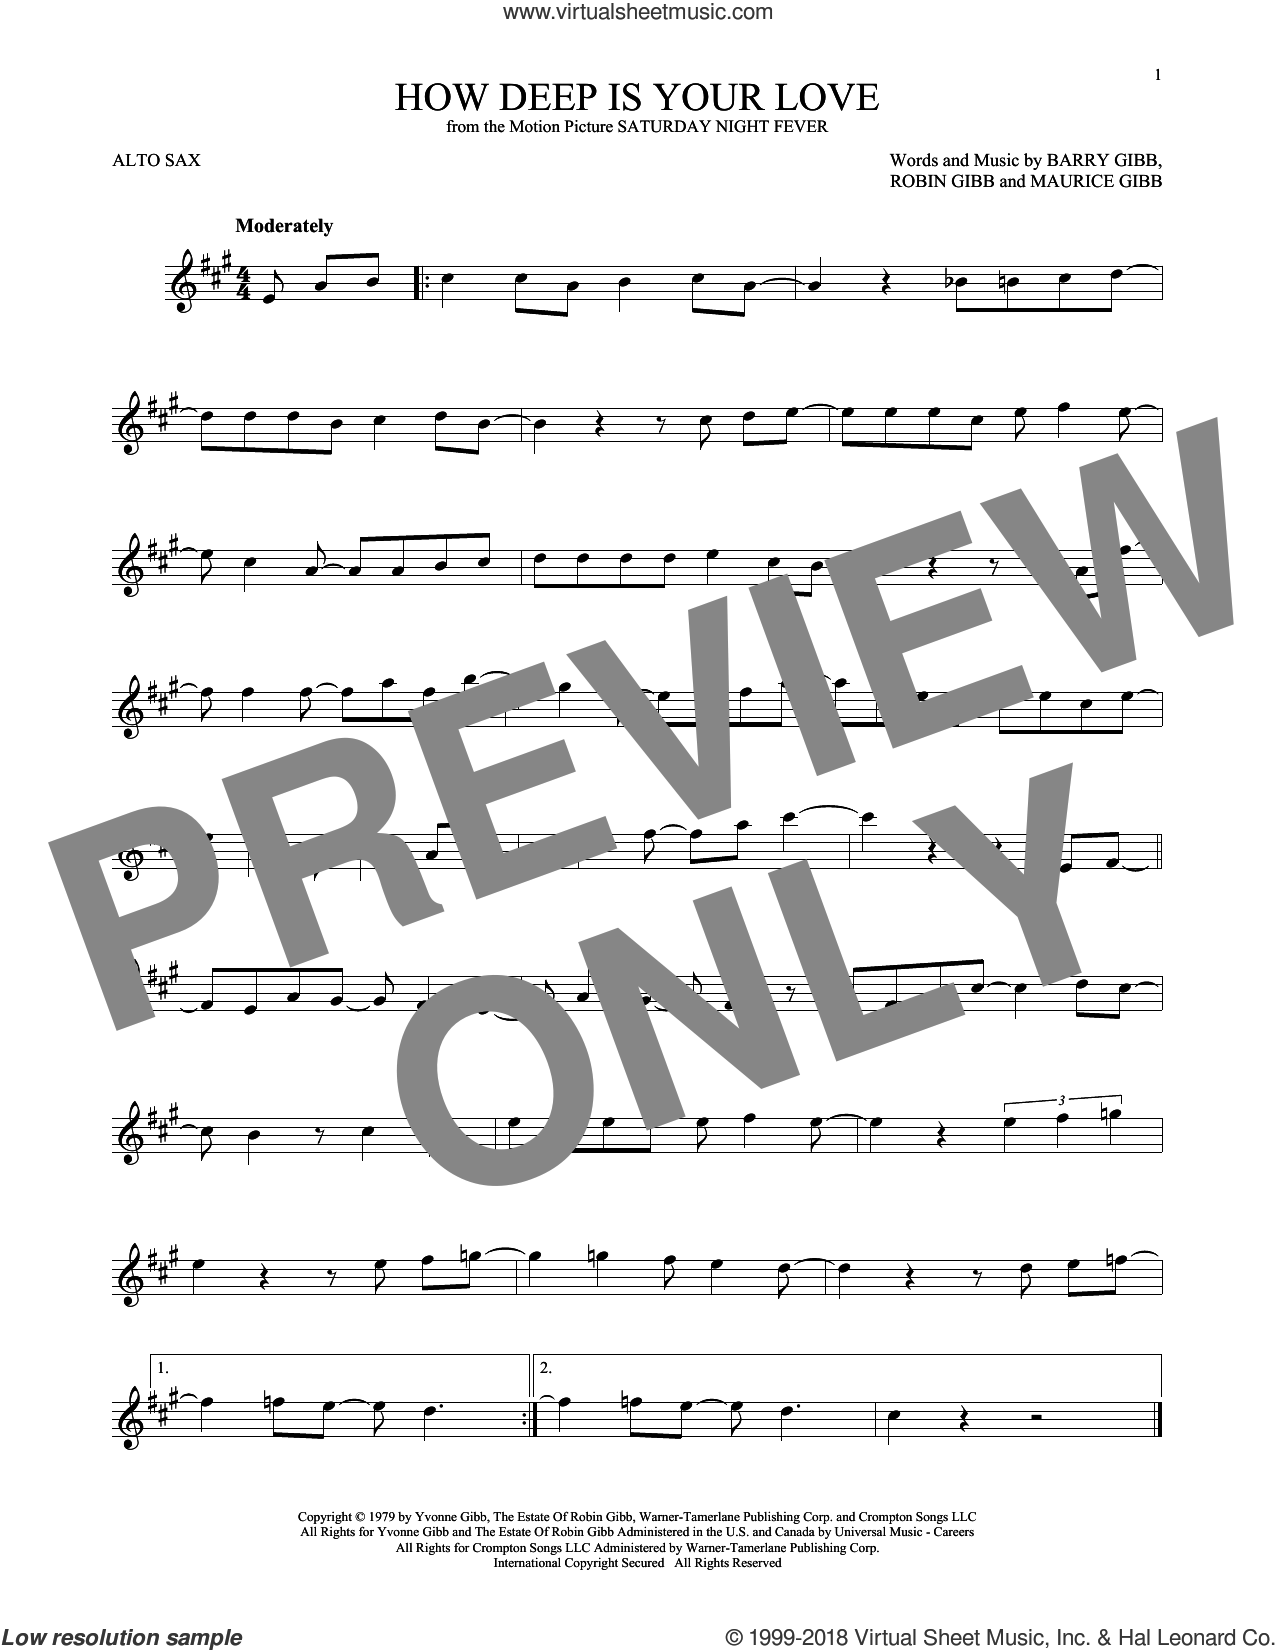 How Deep Is Your Love sheet music for alto saxophone solo ( Sax) by Robin Gibb, Bee Gees, Barry Gibb and Maurice Gibb. Score Image Preview.